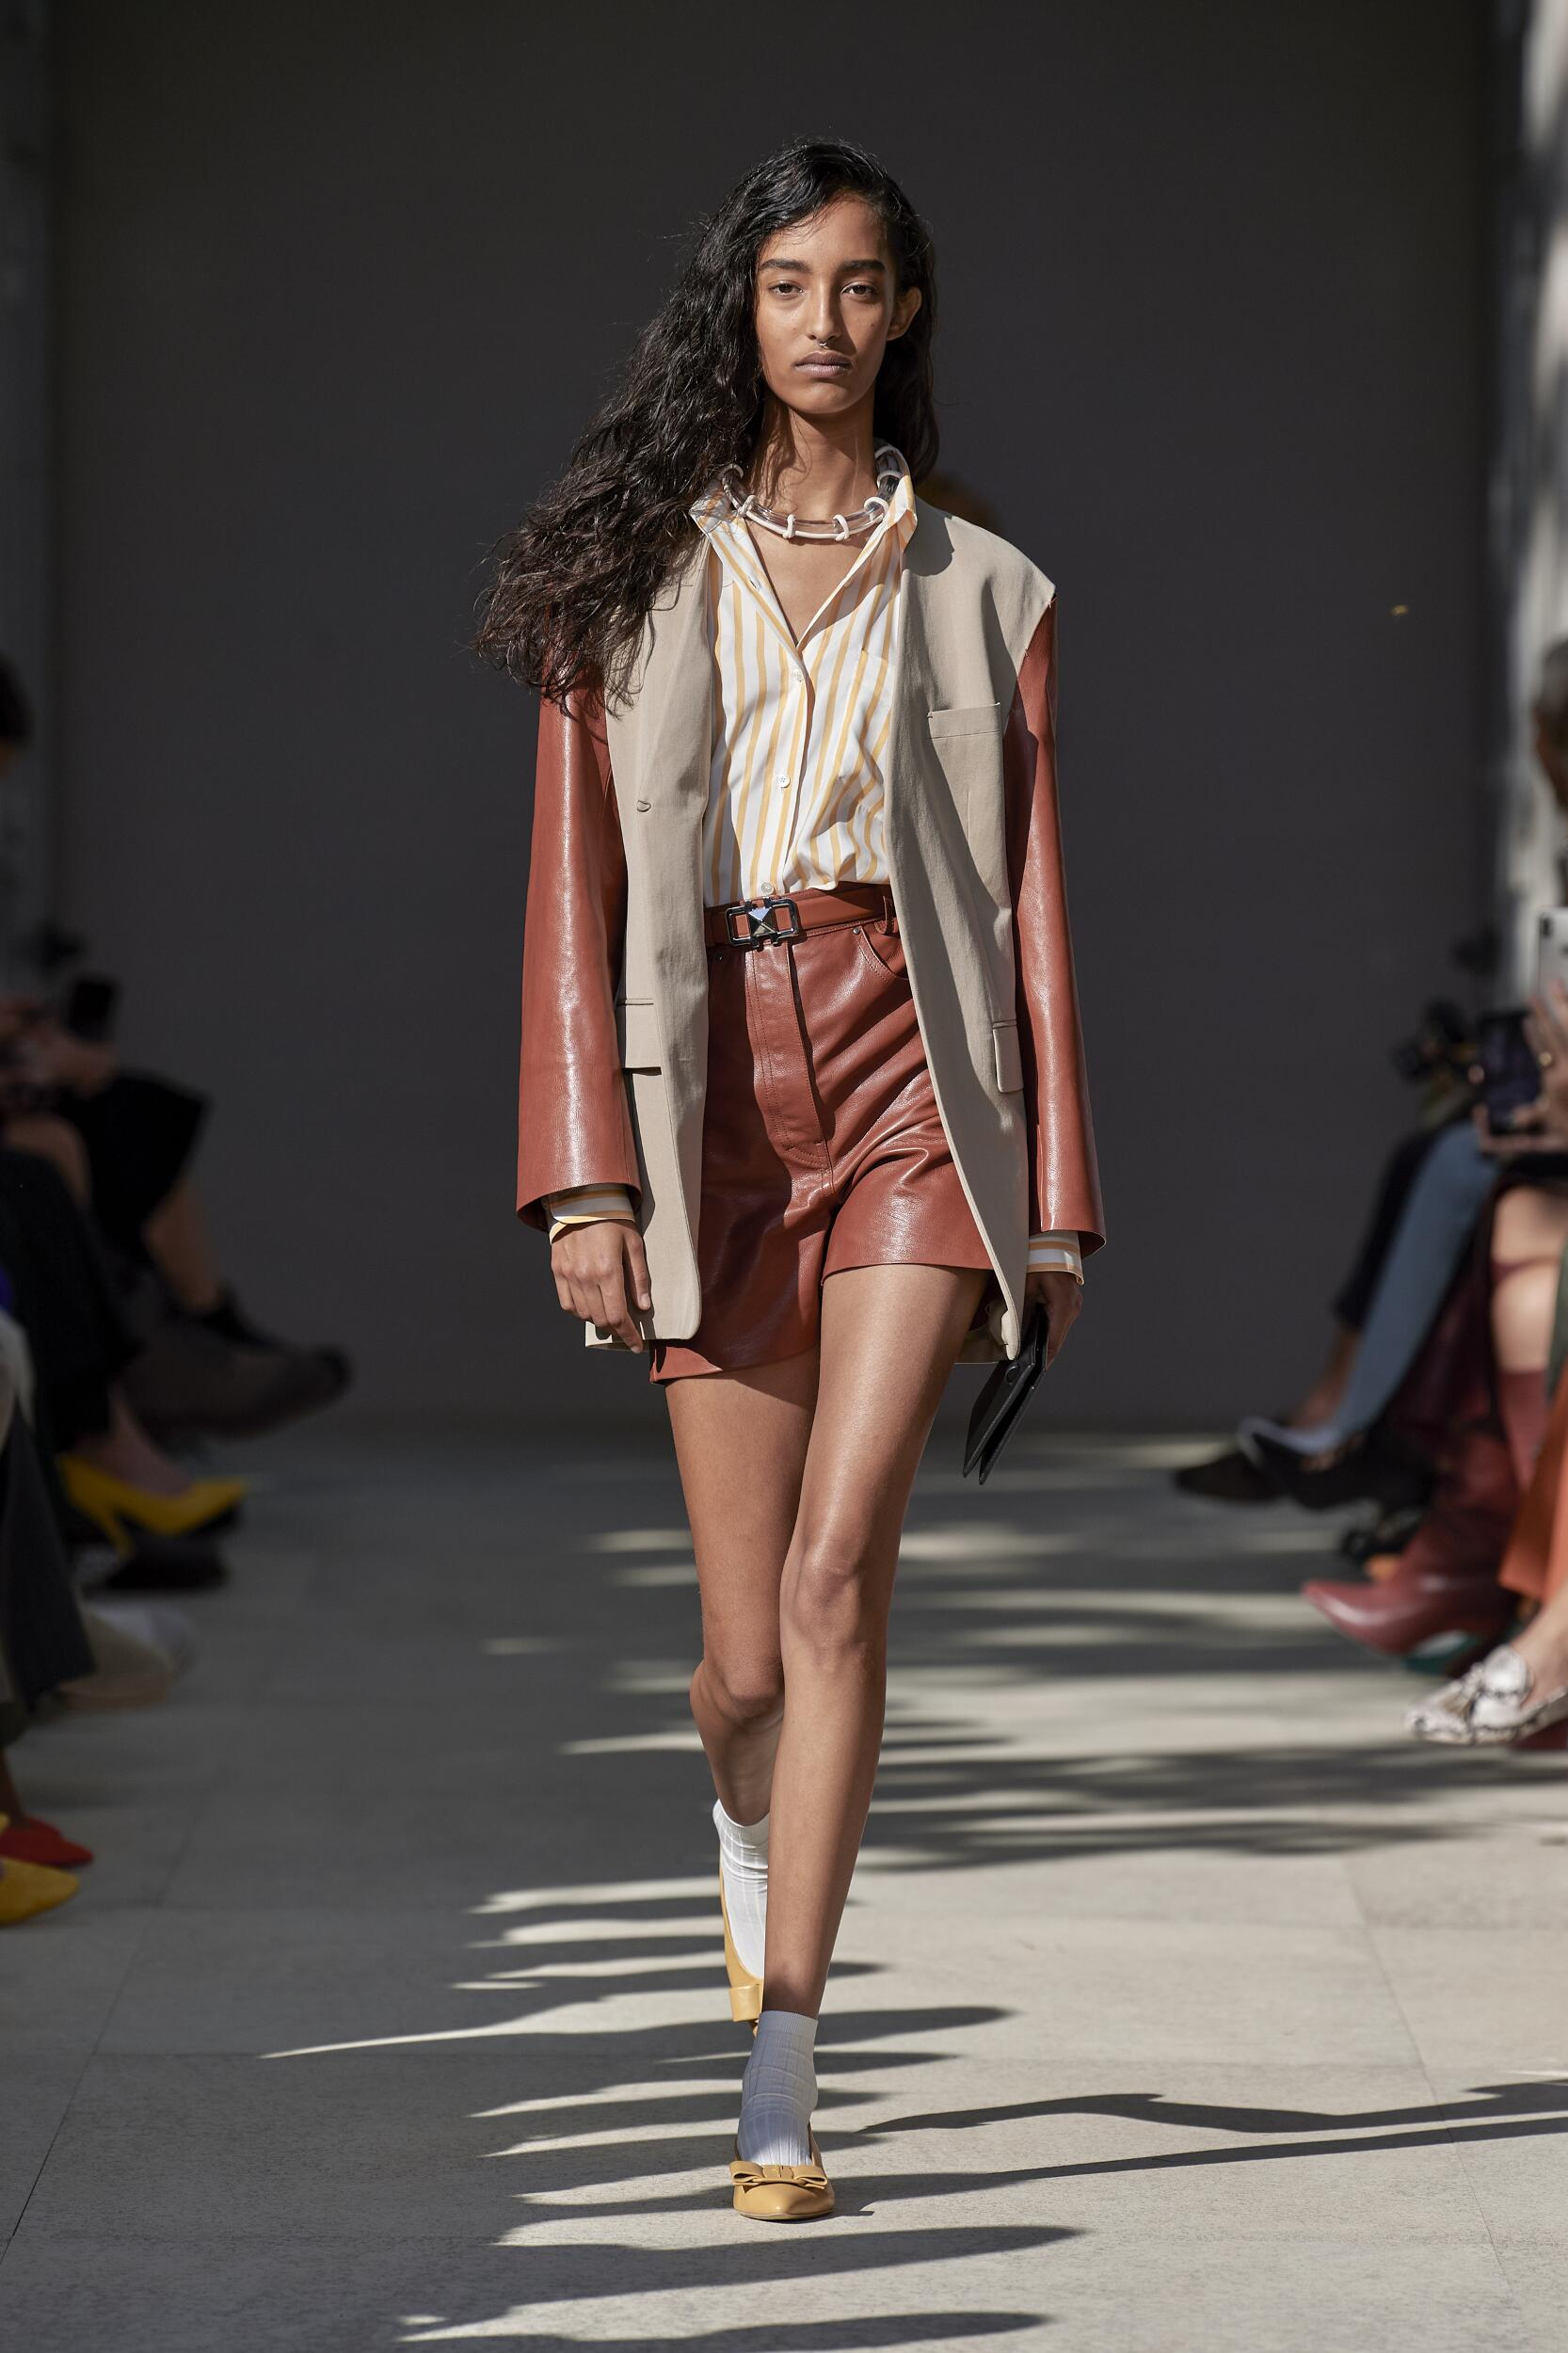 Spring Summer Fashion Trends 2020 Salvatore Ferragamo